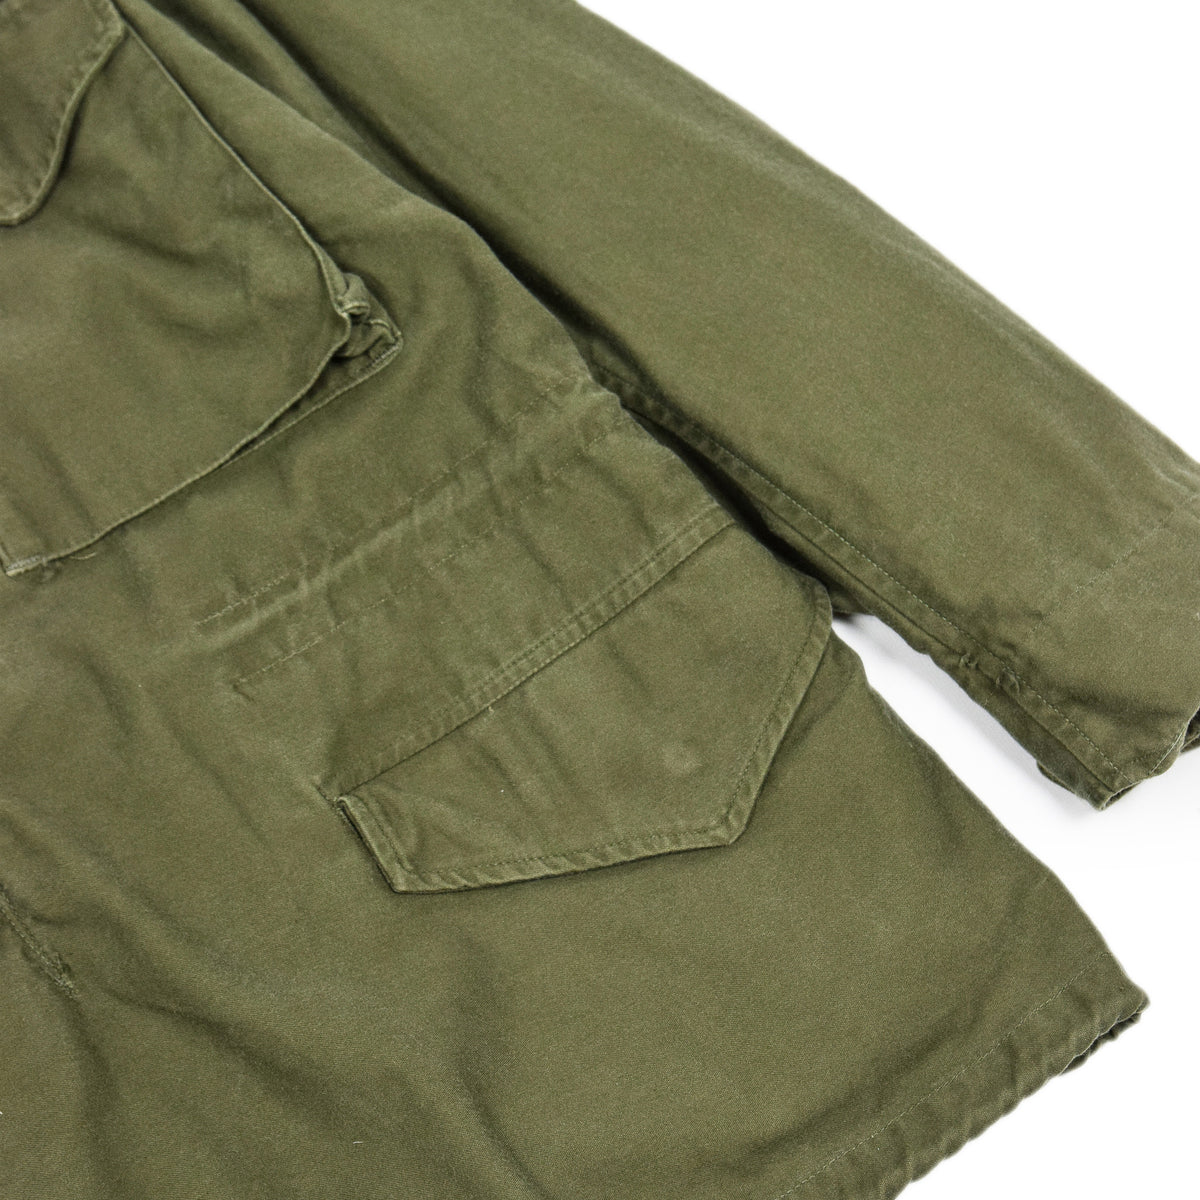 Vintage 60s Vietnam M-65 Man's Field Sateen 0G-107 Green US Army Coat M Short lower pocket